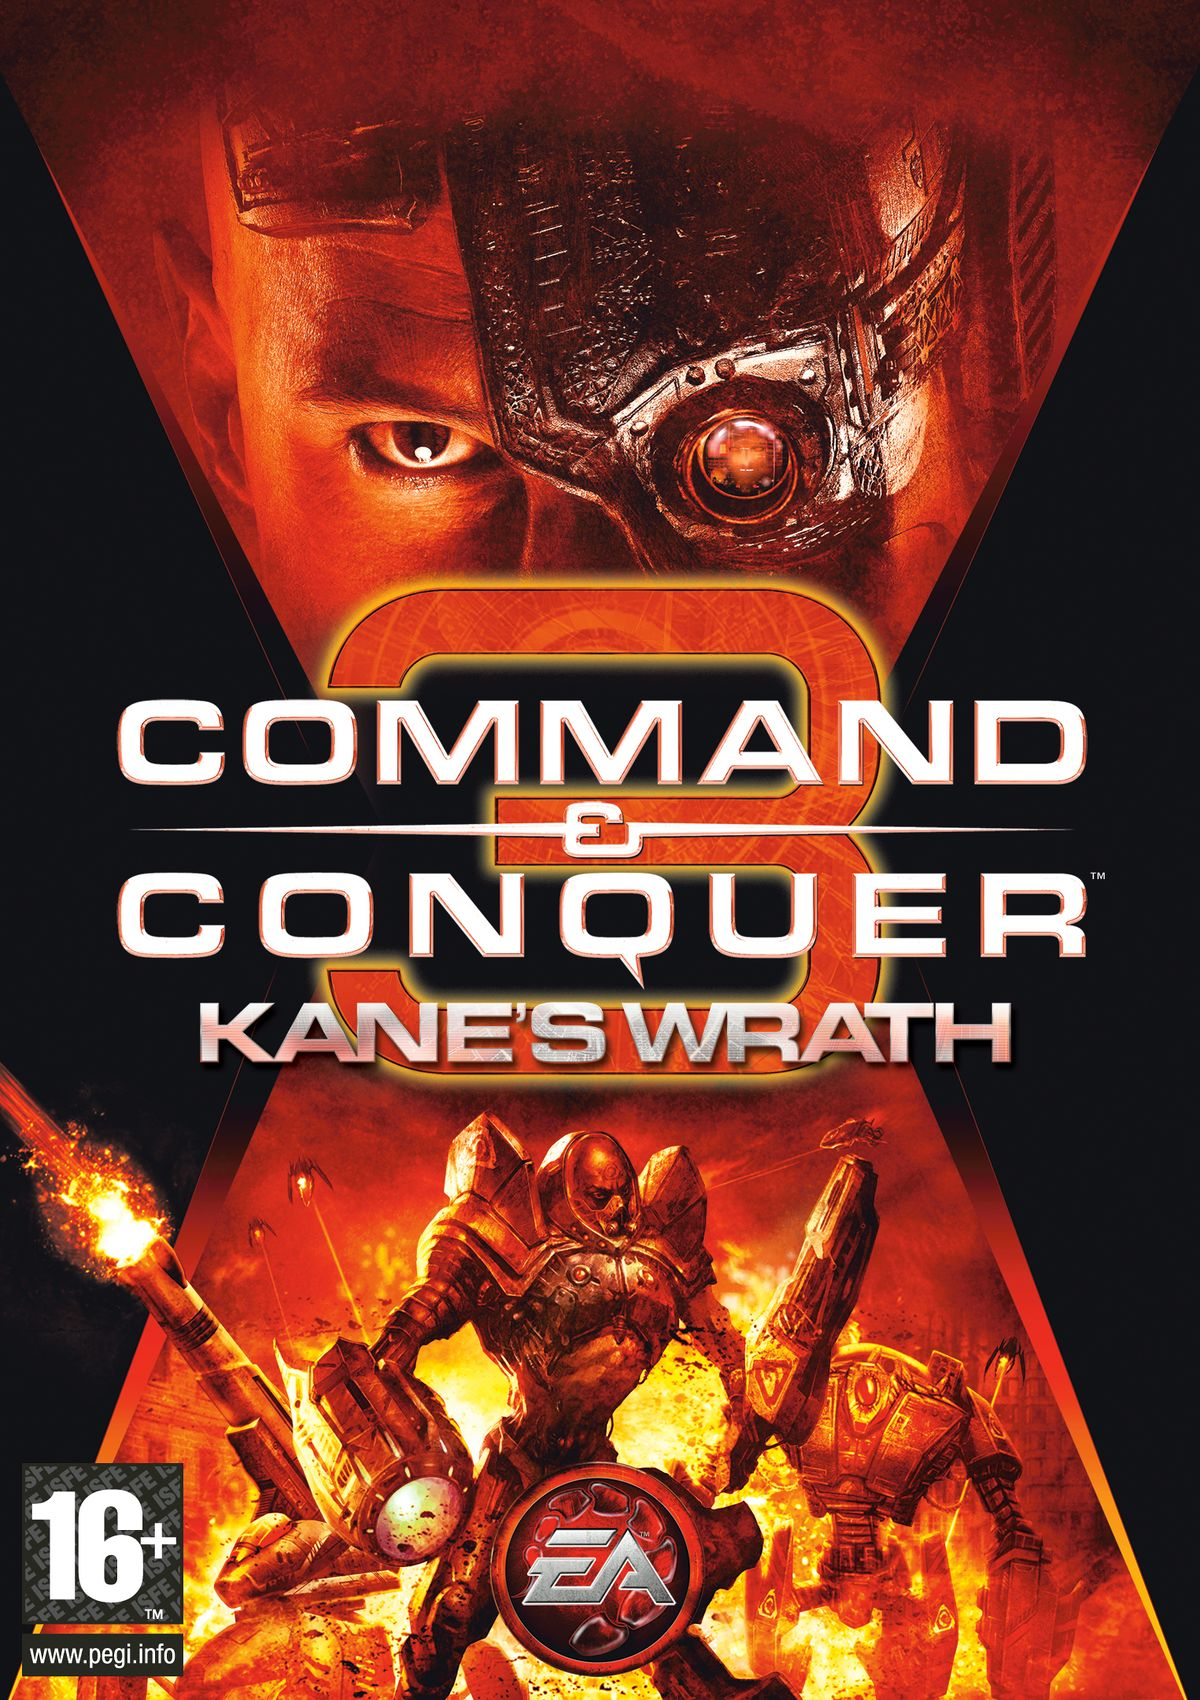 Command & Conquer 3: Kane's Wrath - Command & Conquer Wiki